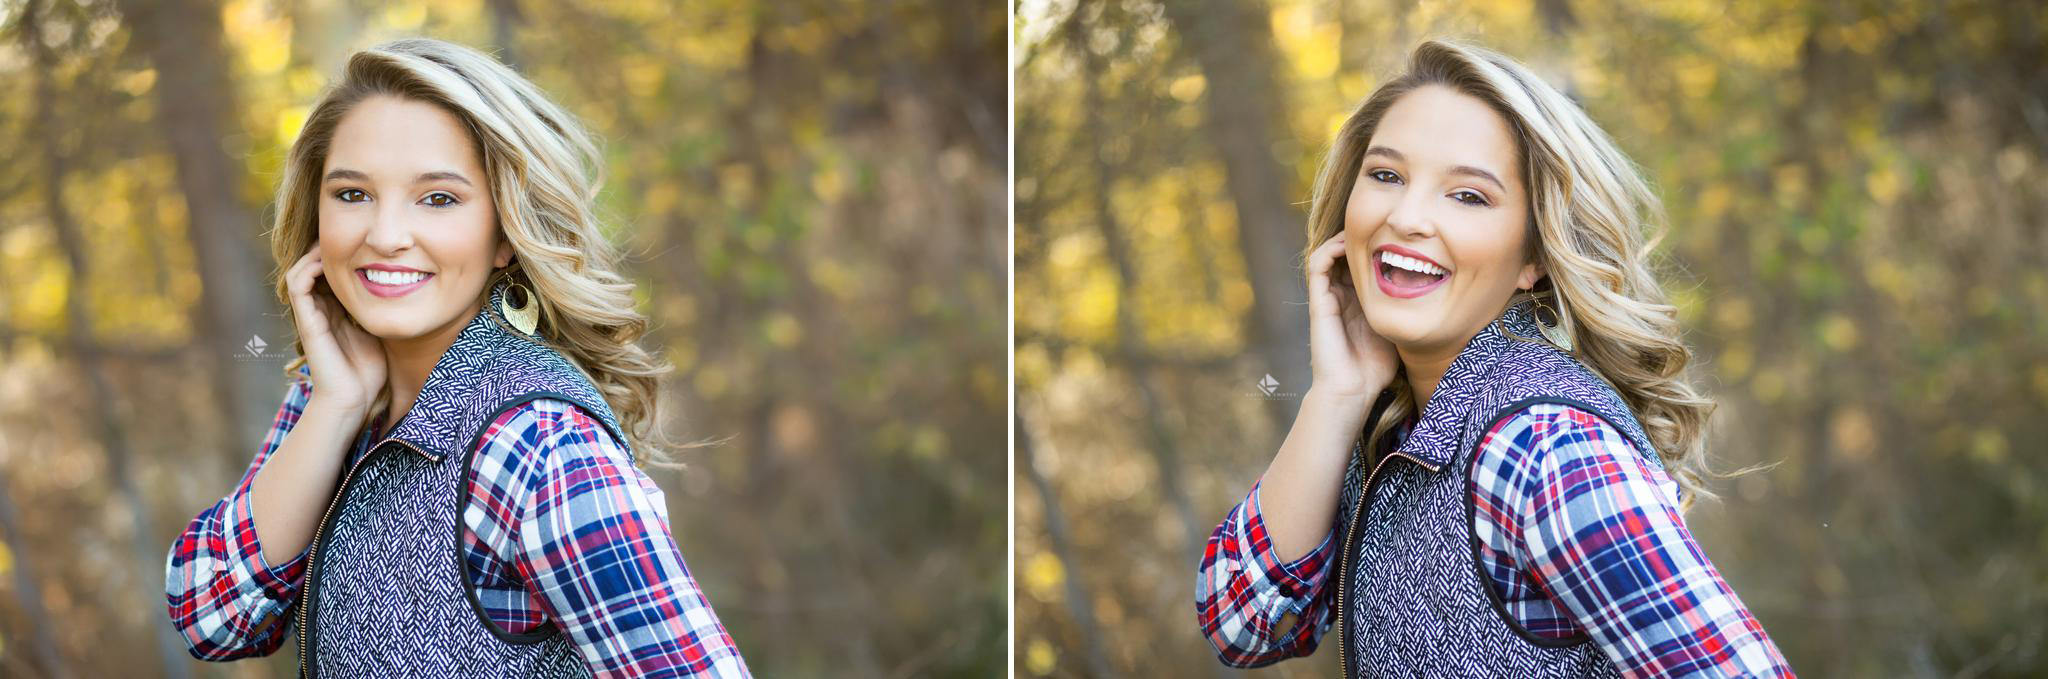 blonde senior girl in a plaid shirt and a wool vest standing in fall foliage laughing